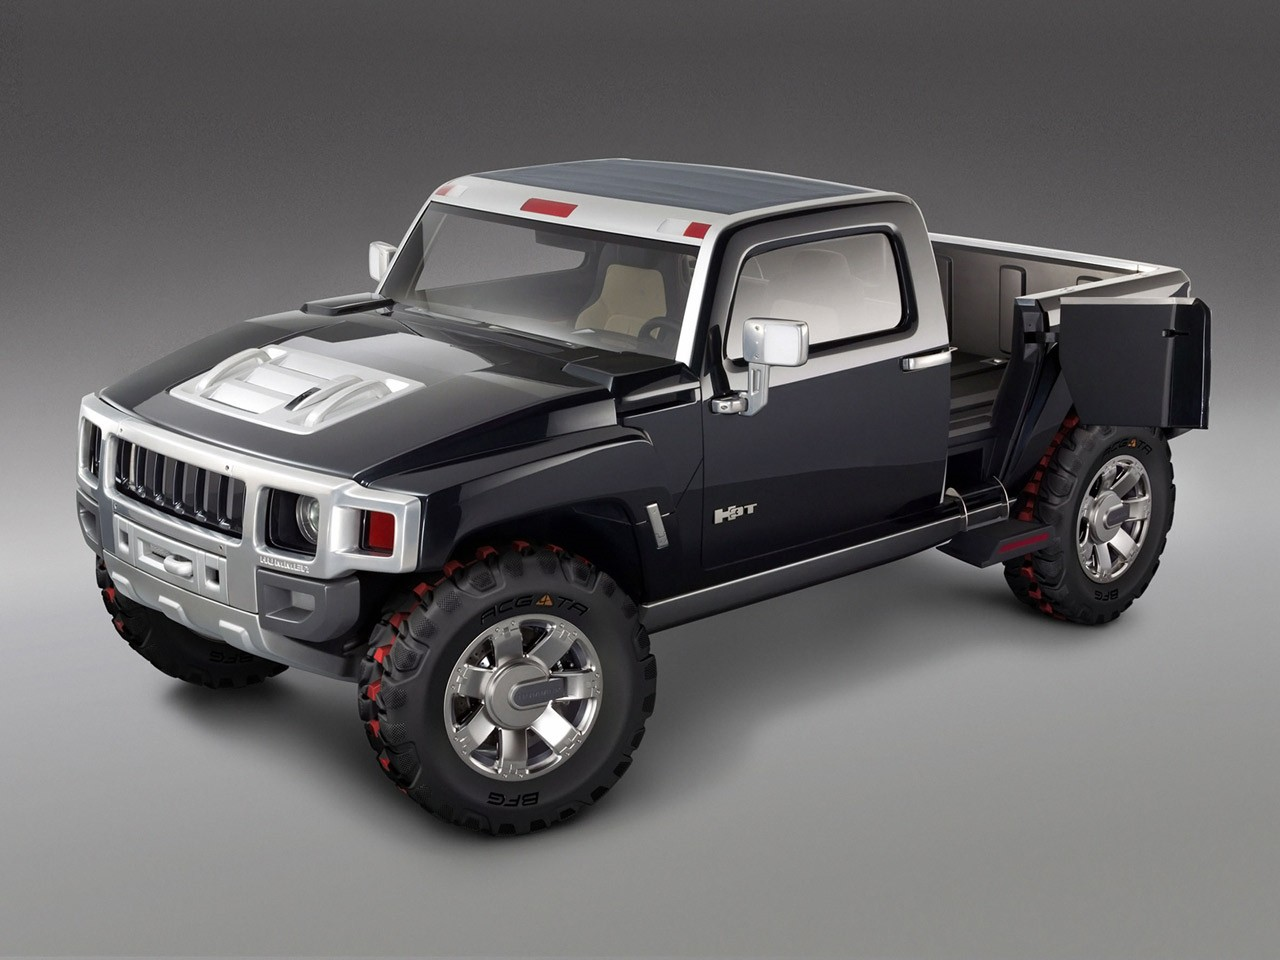 hummer for sale related images start 400 weili automotive network. Black Bedroom Furniture Sets. Home Design Ideas